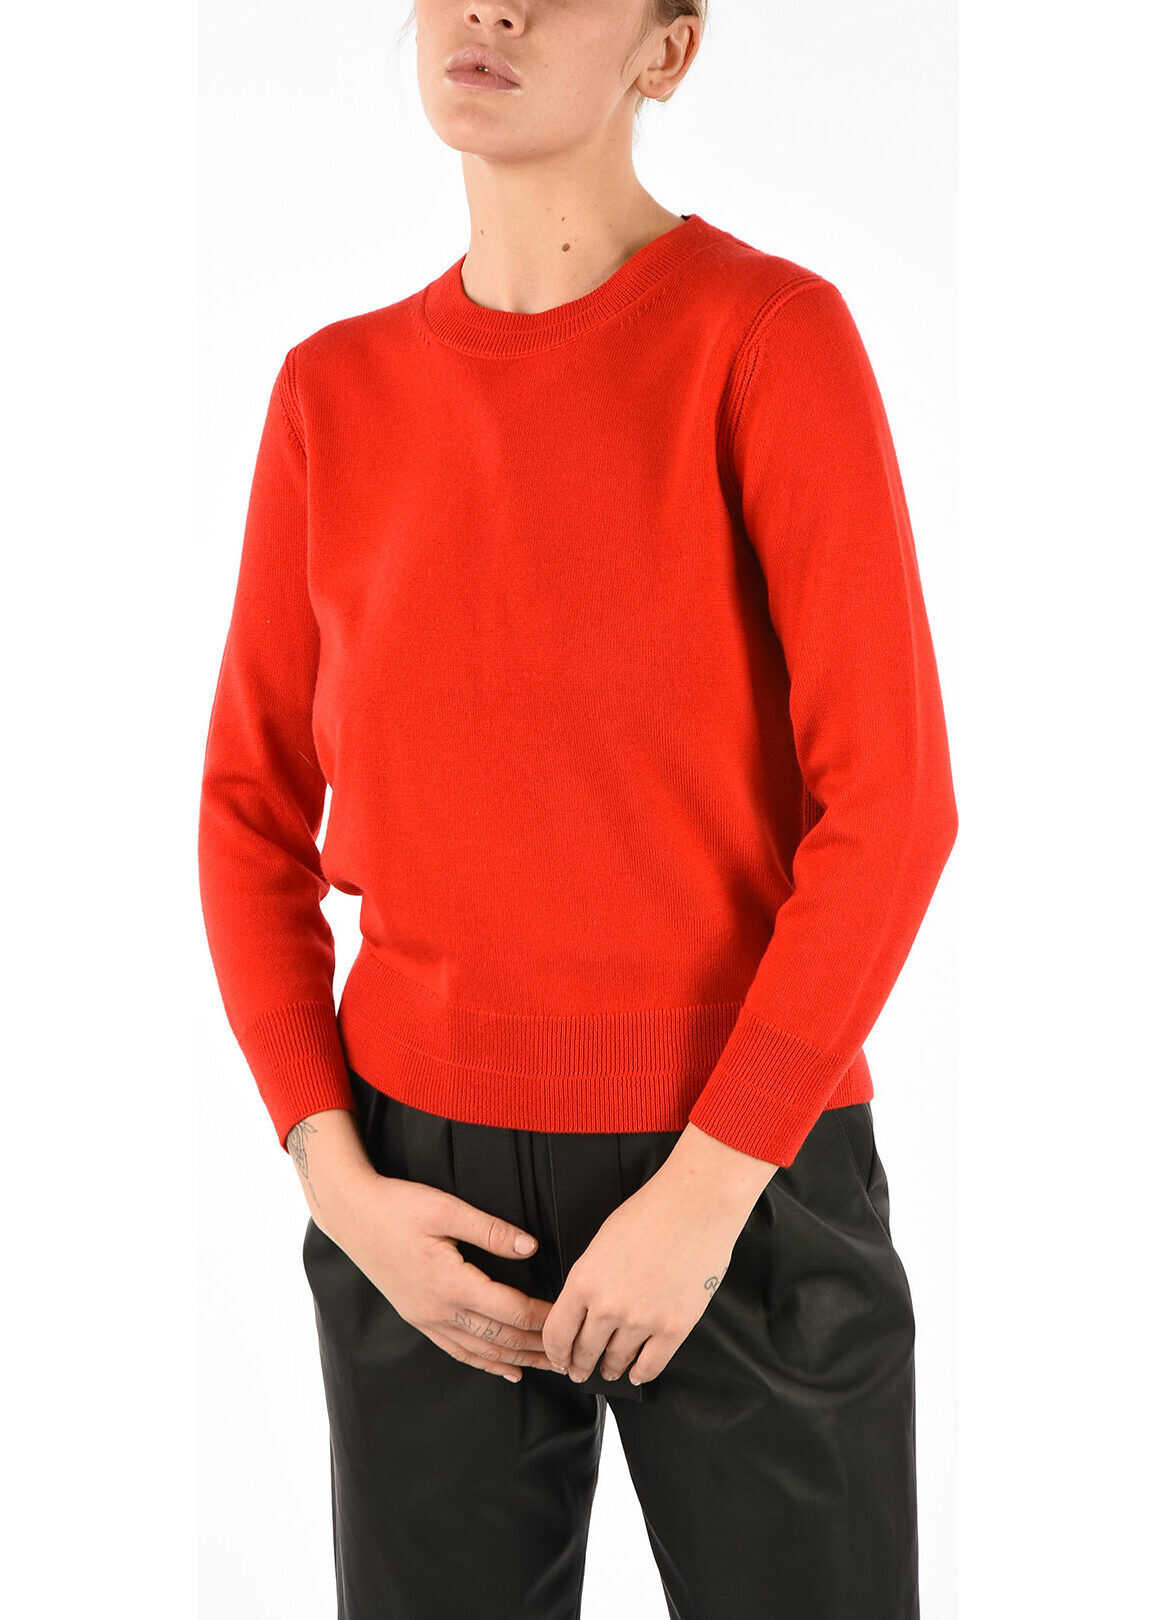 Marc Jacobs Sweater with Jewel Bottoms RED